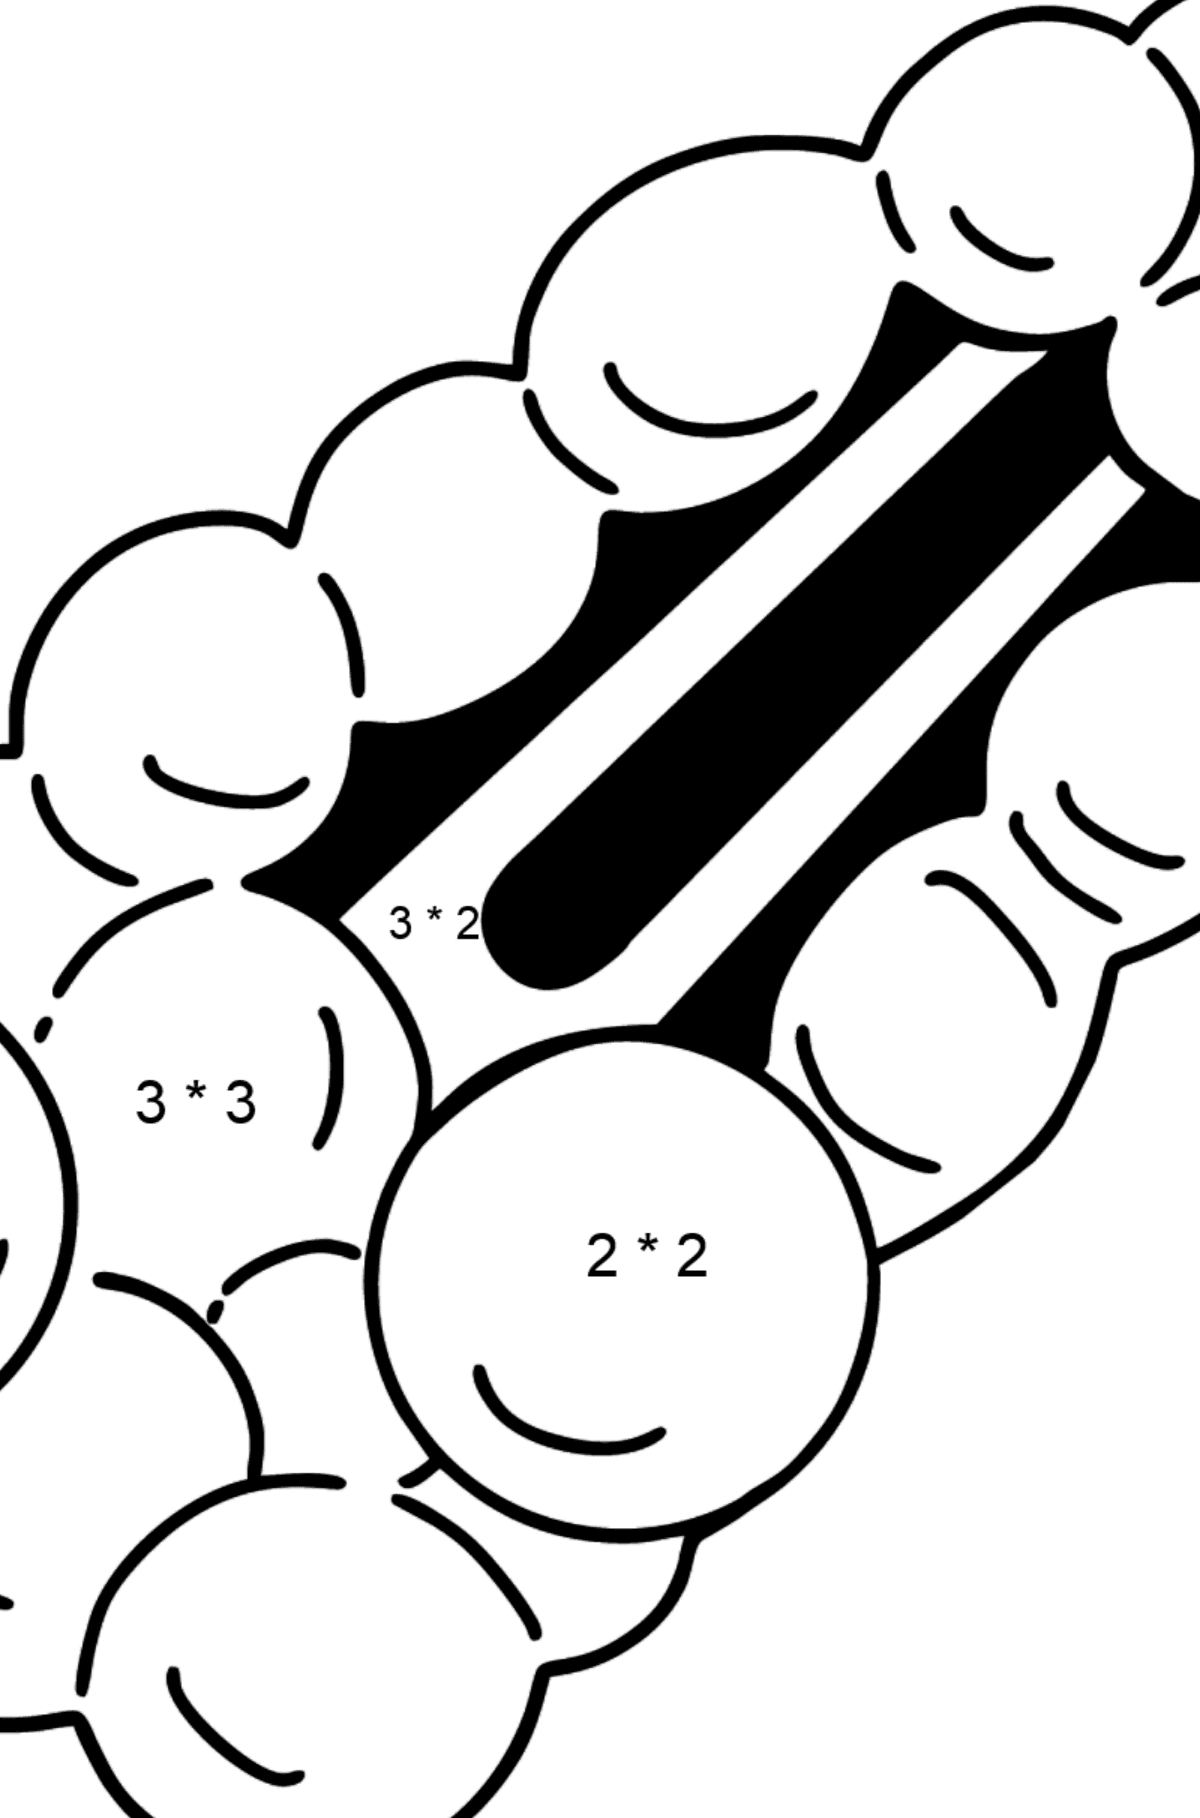 Barrette coloring page - Math Coloring - Multiplication for Kids